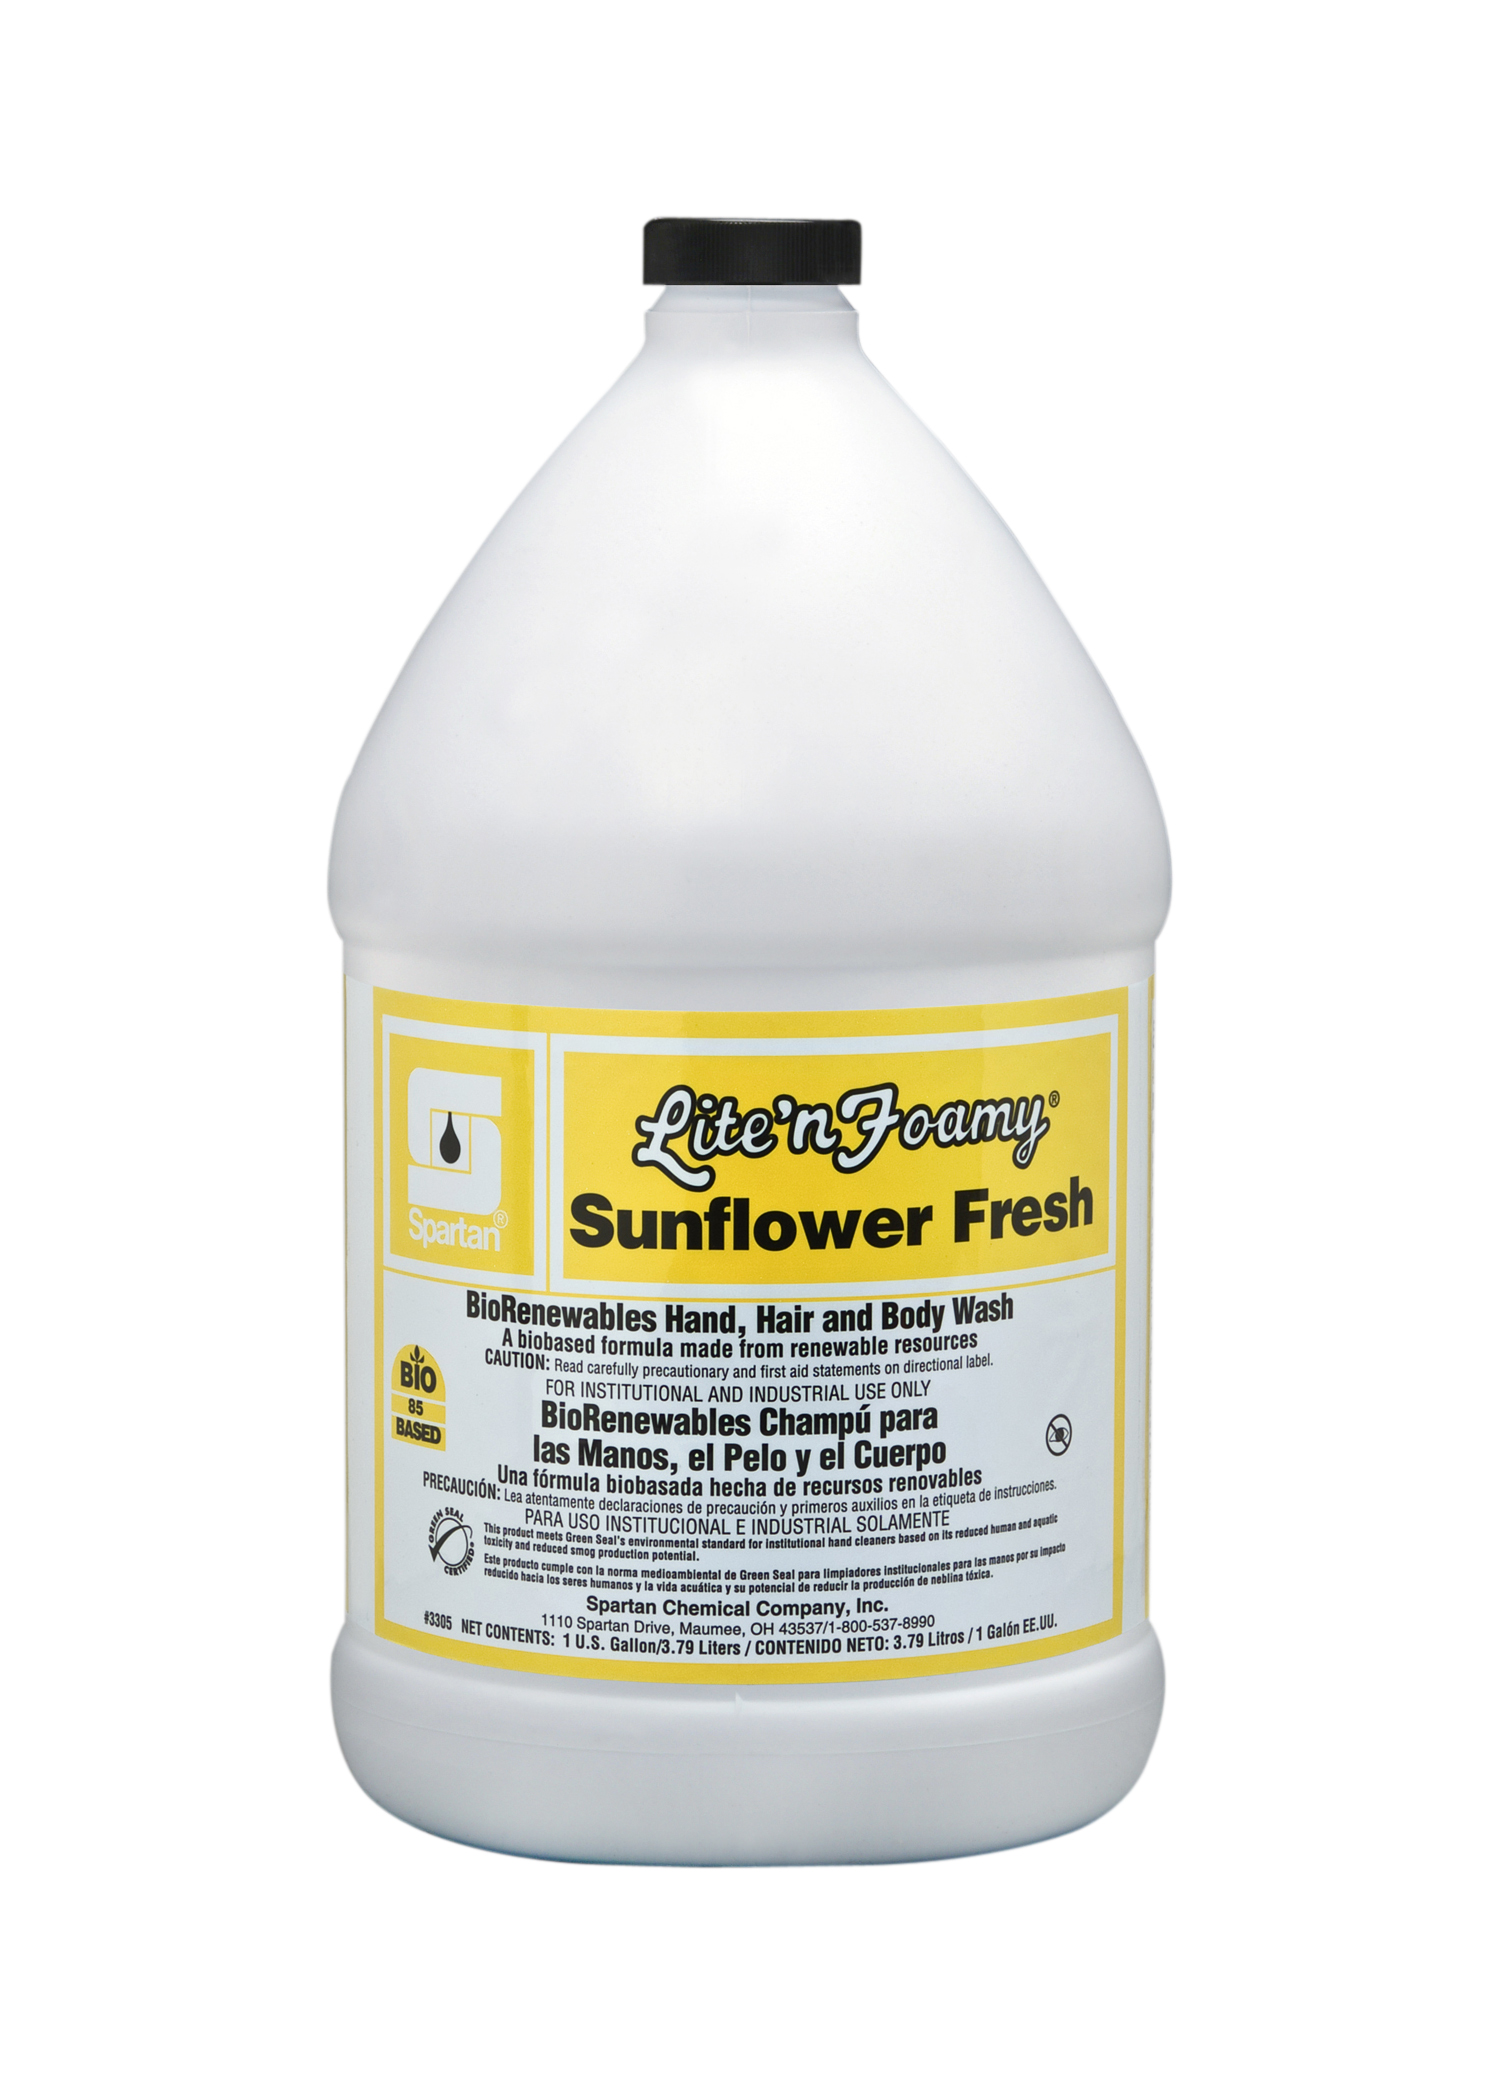 330504-Lite'N Foamy|Sunflower